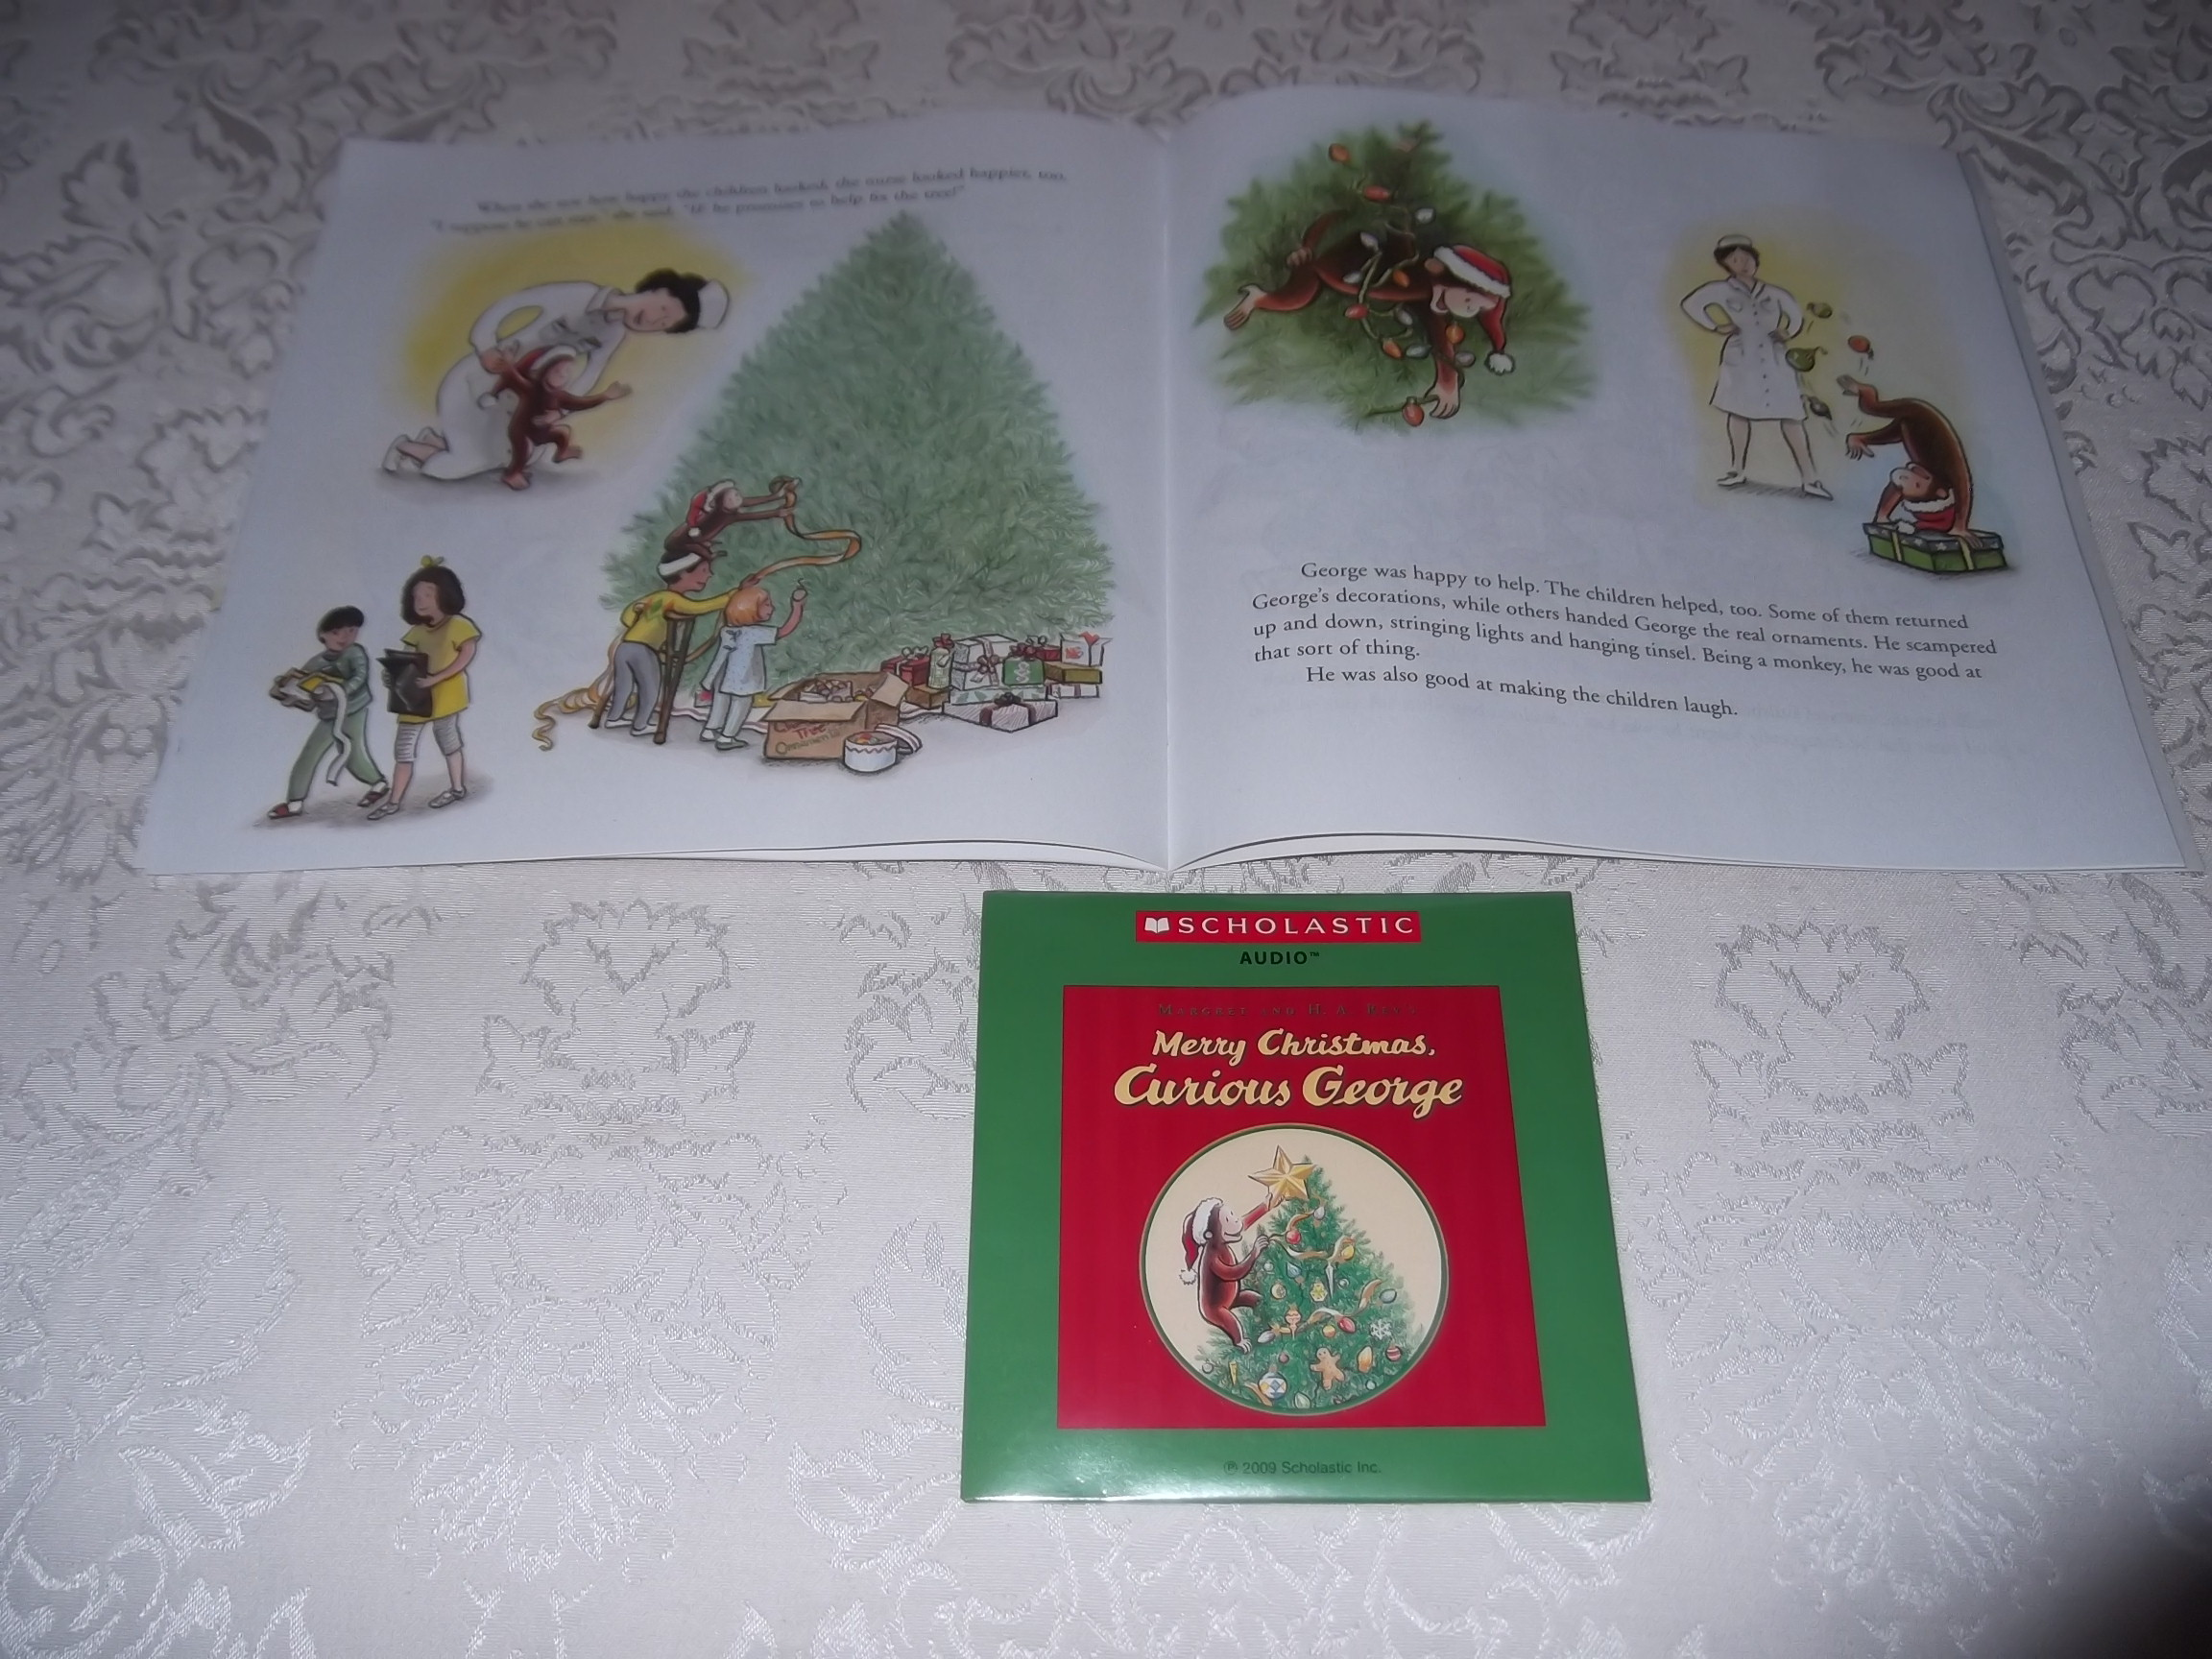 Image 4 of Merry Christmas, Curious George Margret and H.A. Rey Brand New Audio CD and SC